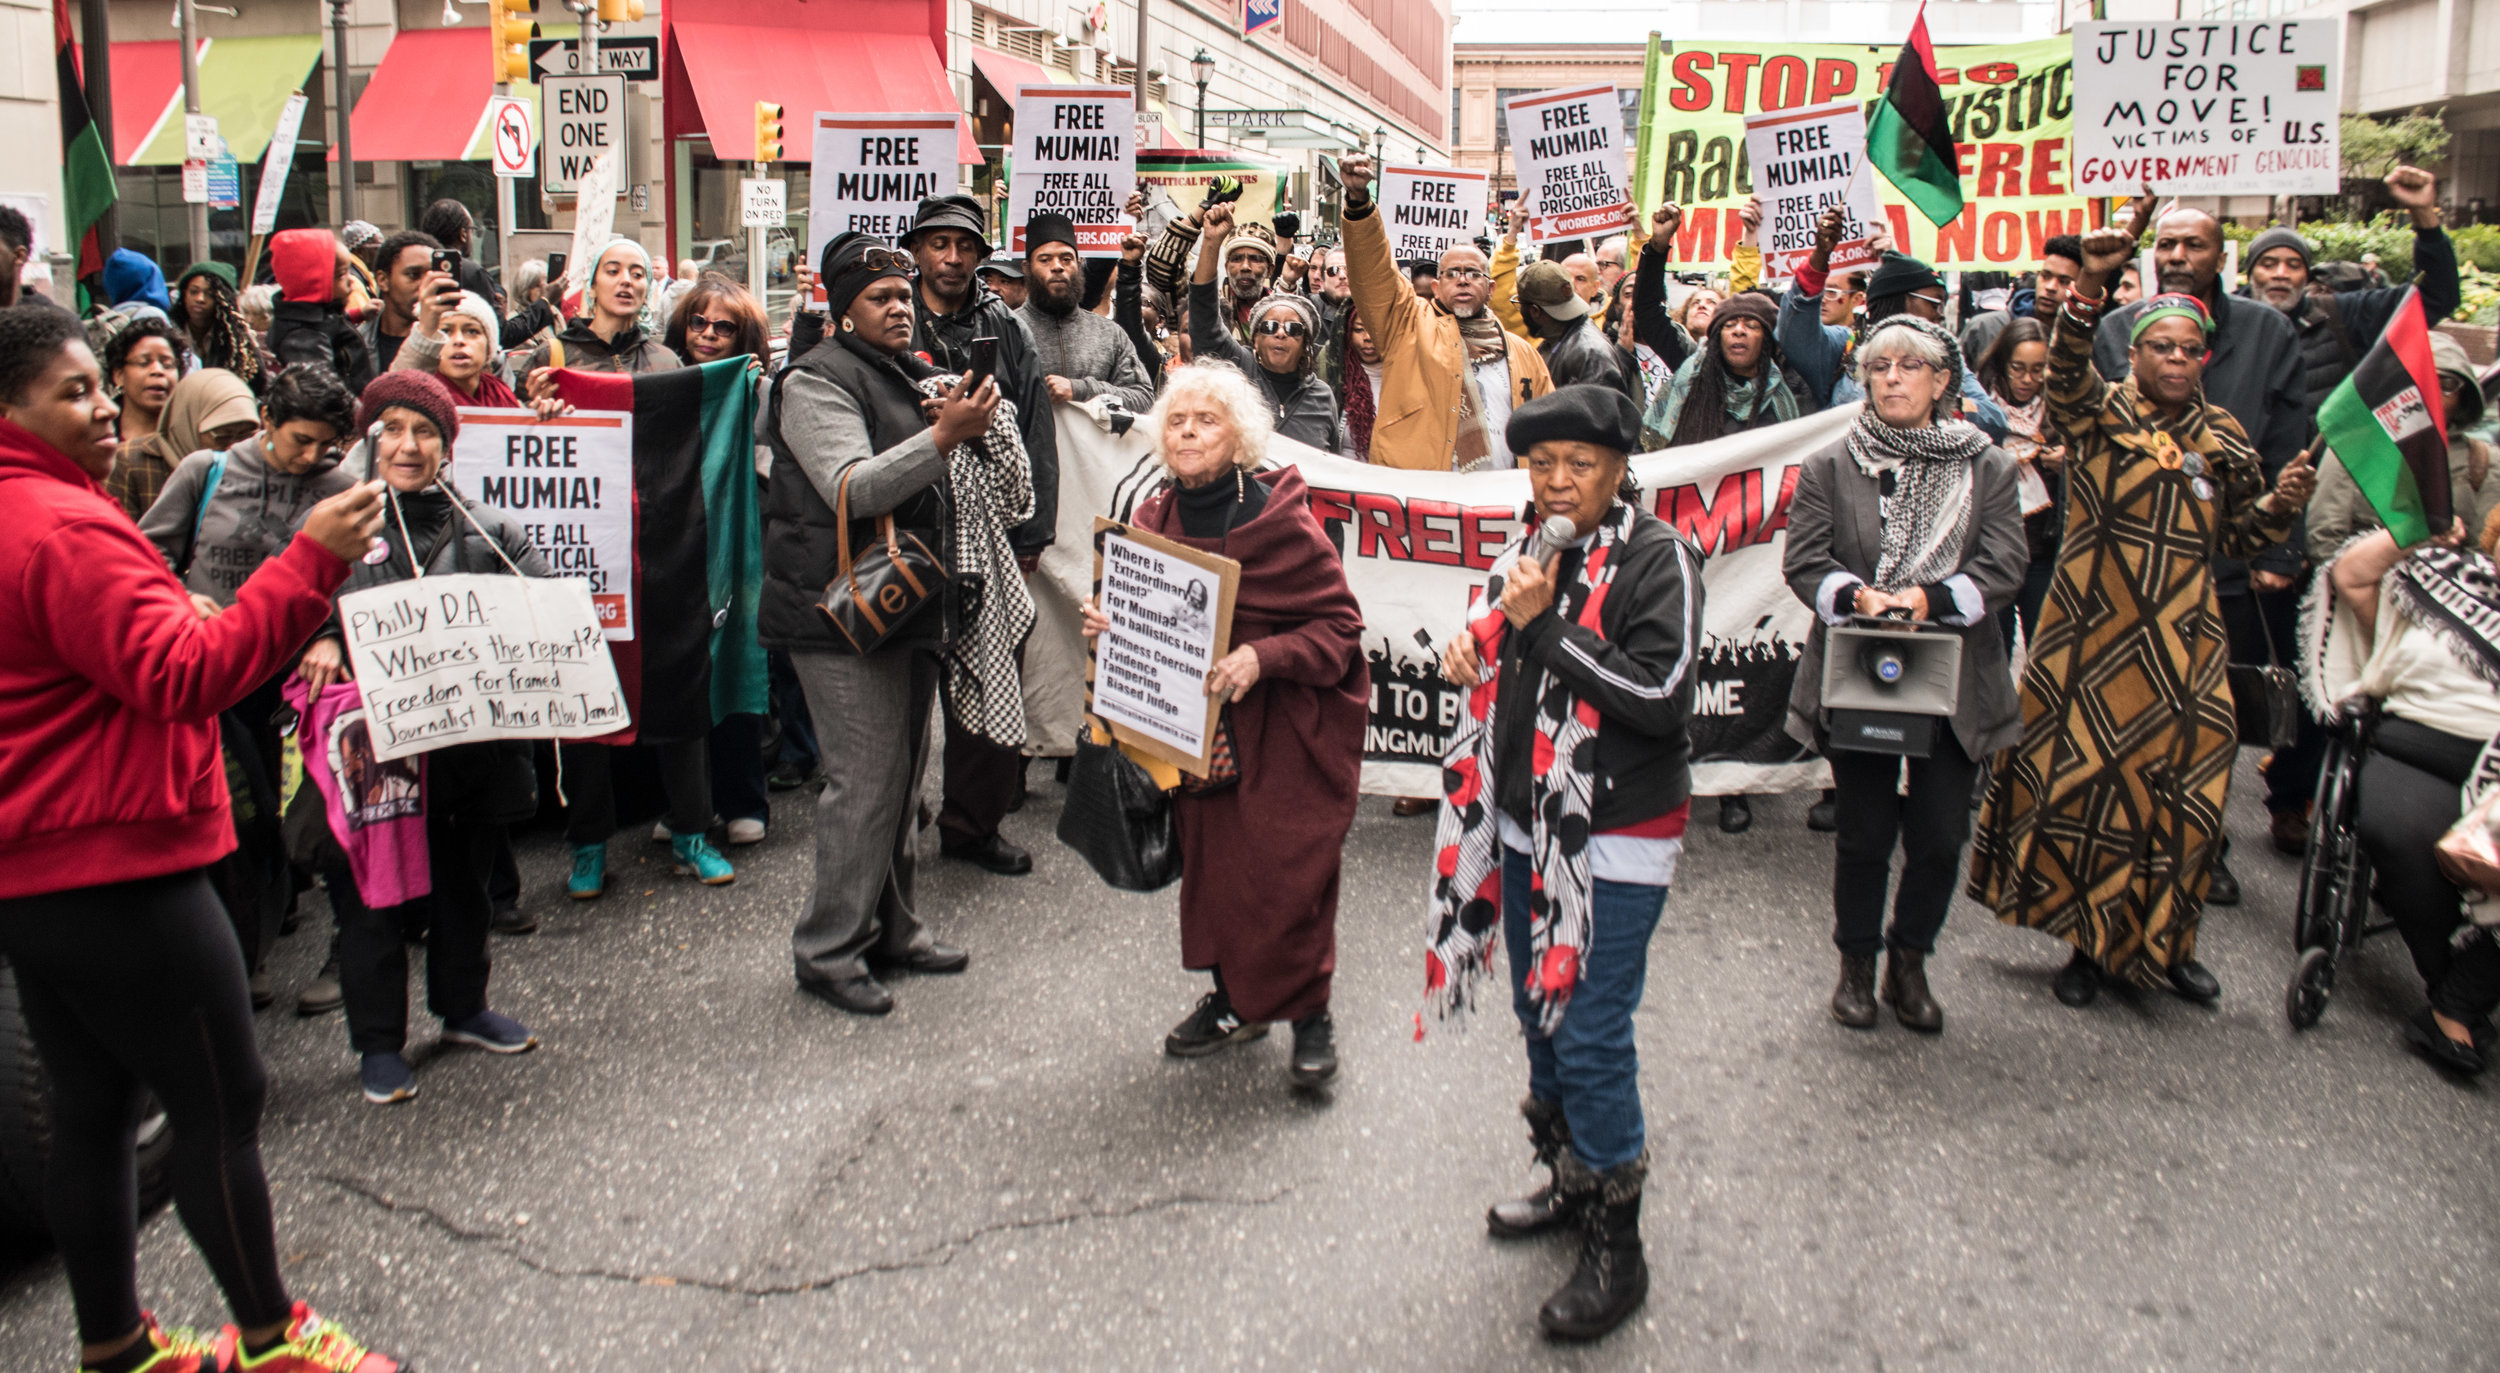 Mumia supporters take the street following a Oct 29, 2018 court hearing.